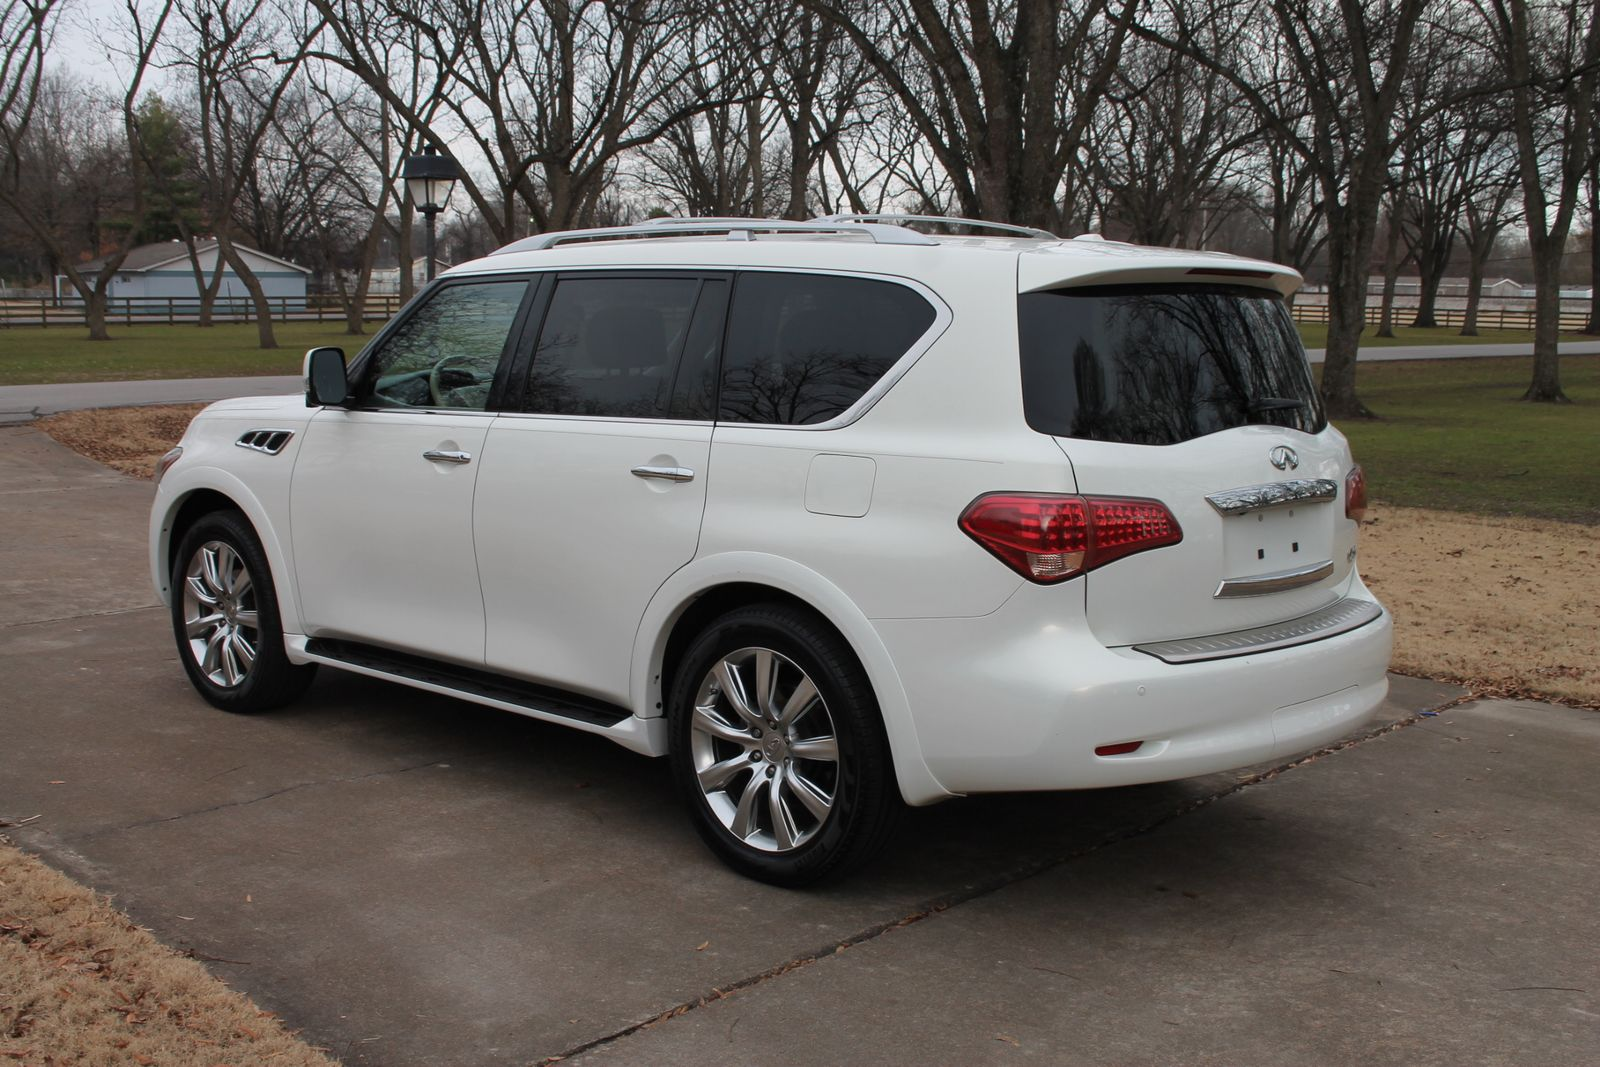 2012 Infiniti Qx56 7 Passenger Price Used Cars Memphis Hallum 55 Nissan Outboard Wiring Harness Motors Citystatezip In